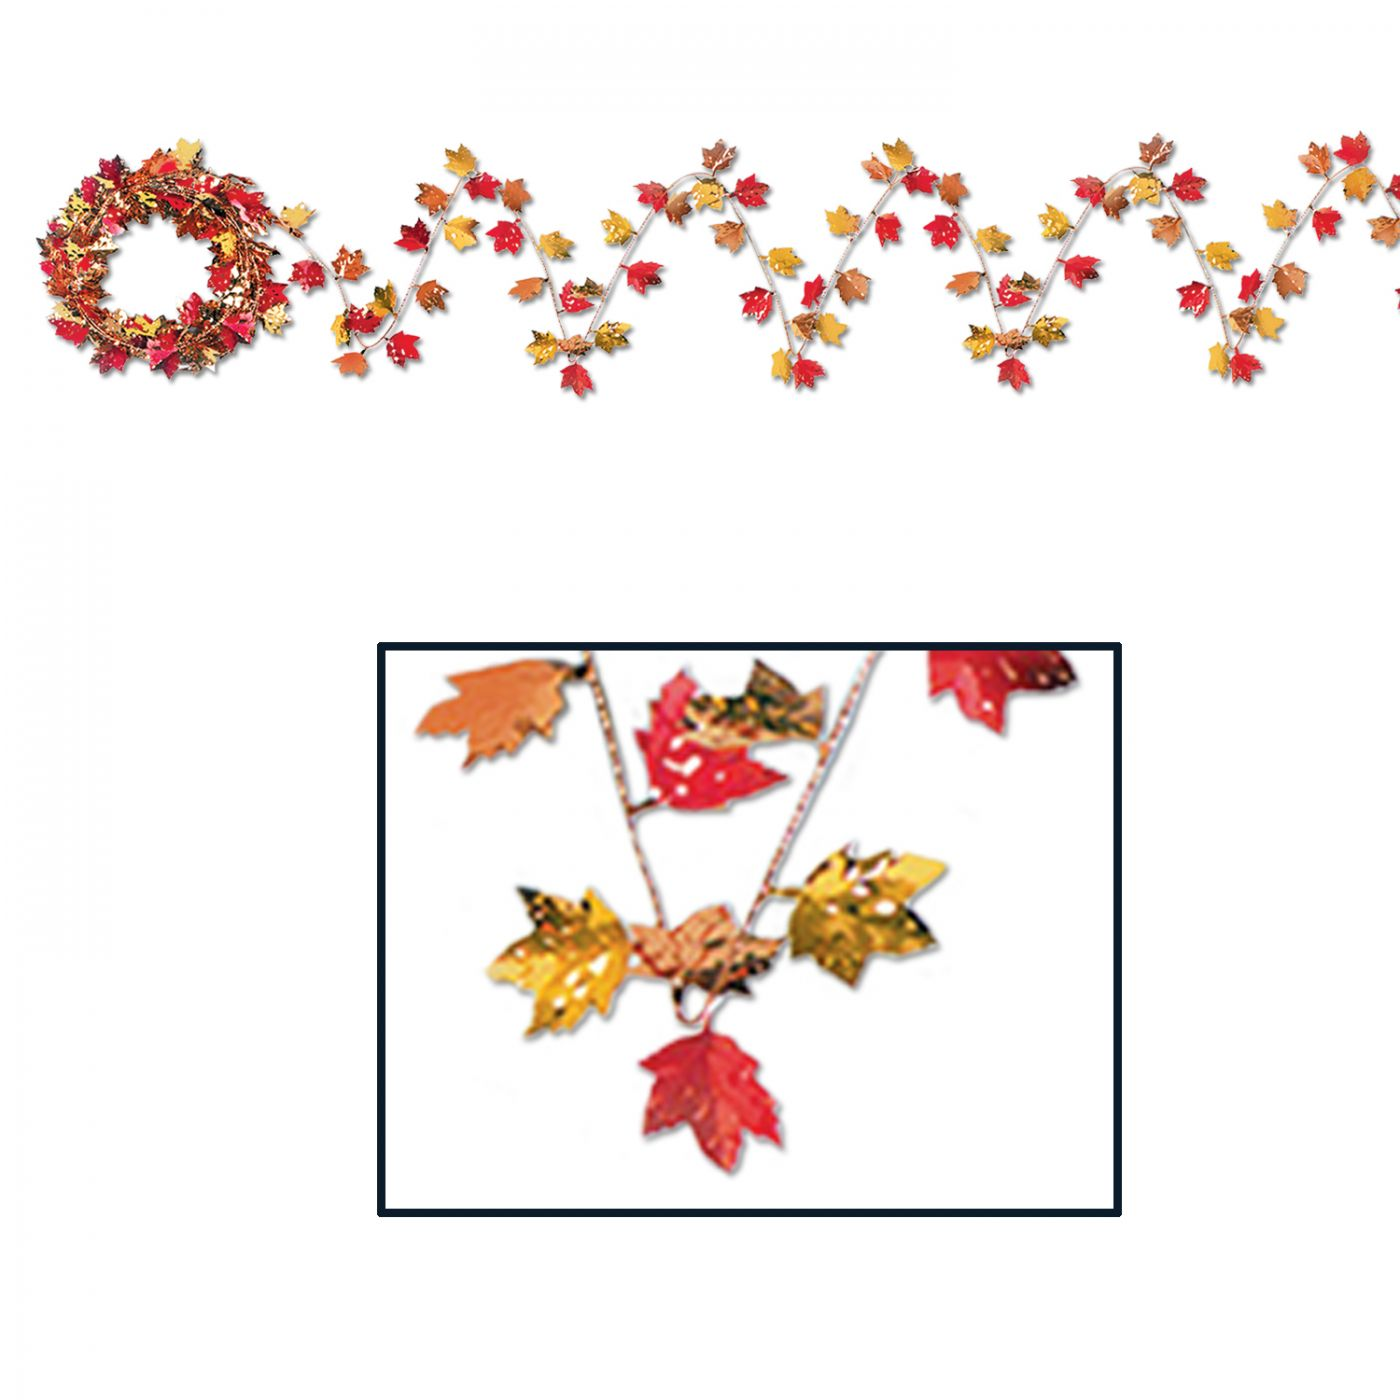 Gleam 'N Flex Autumn Leaf Garland image